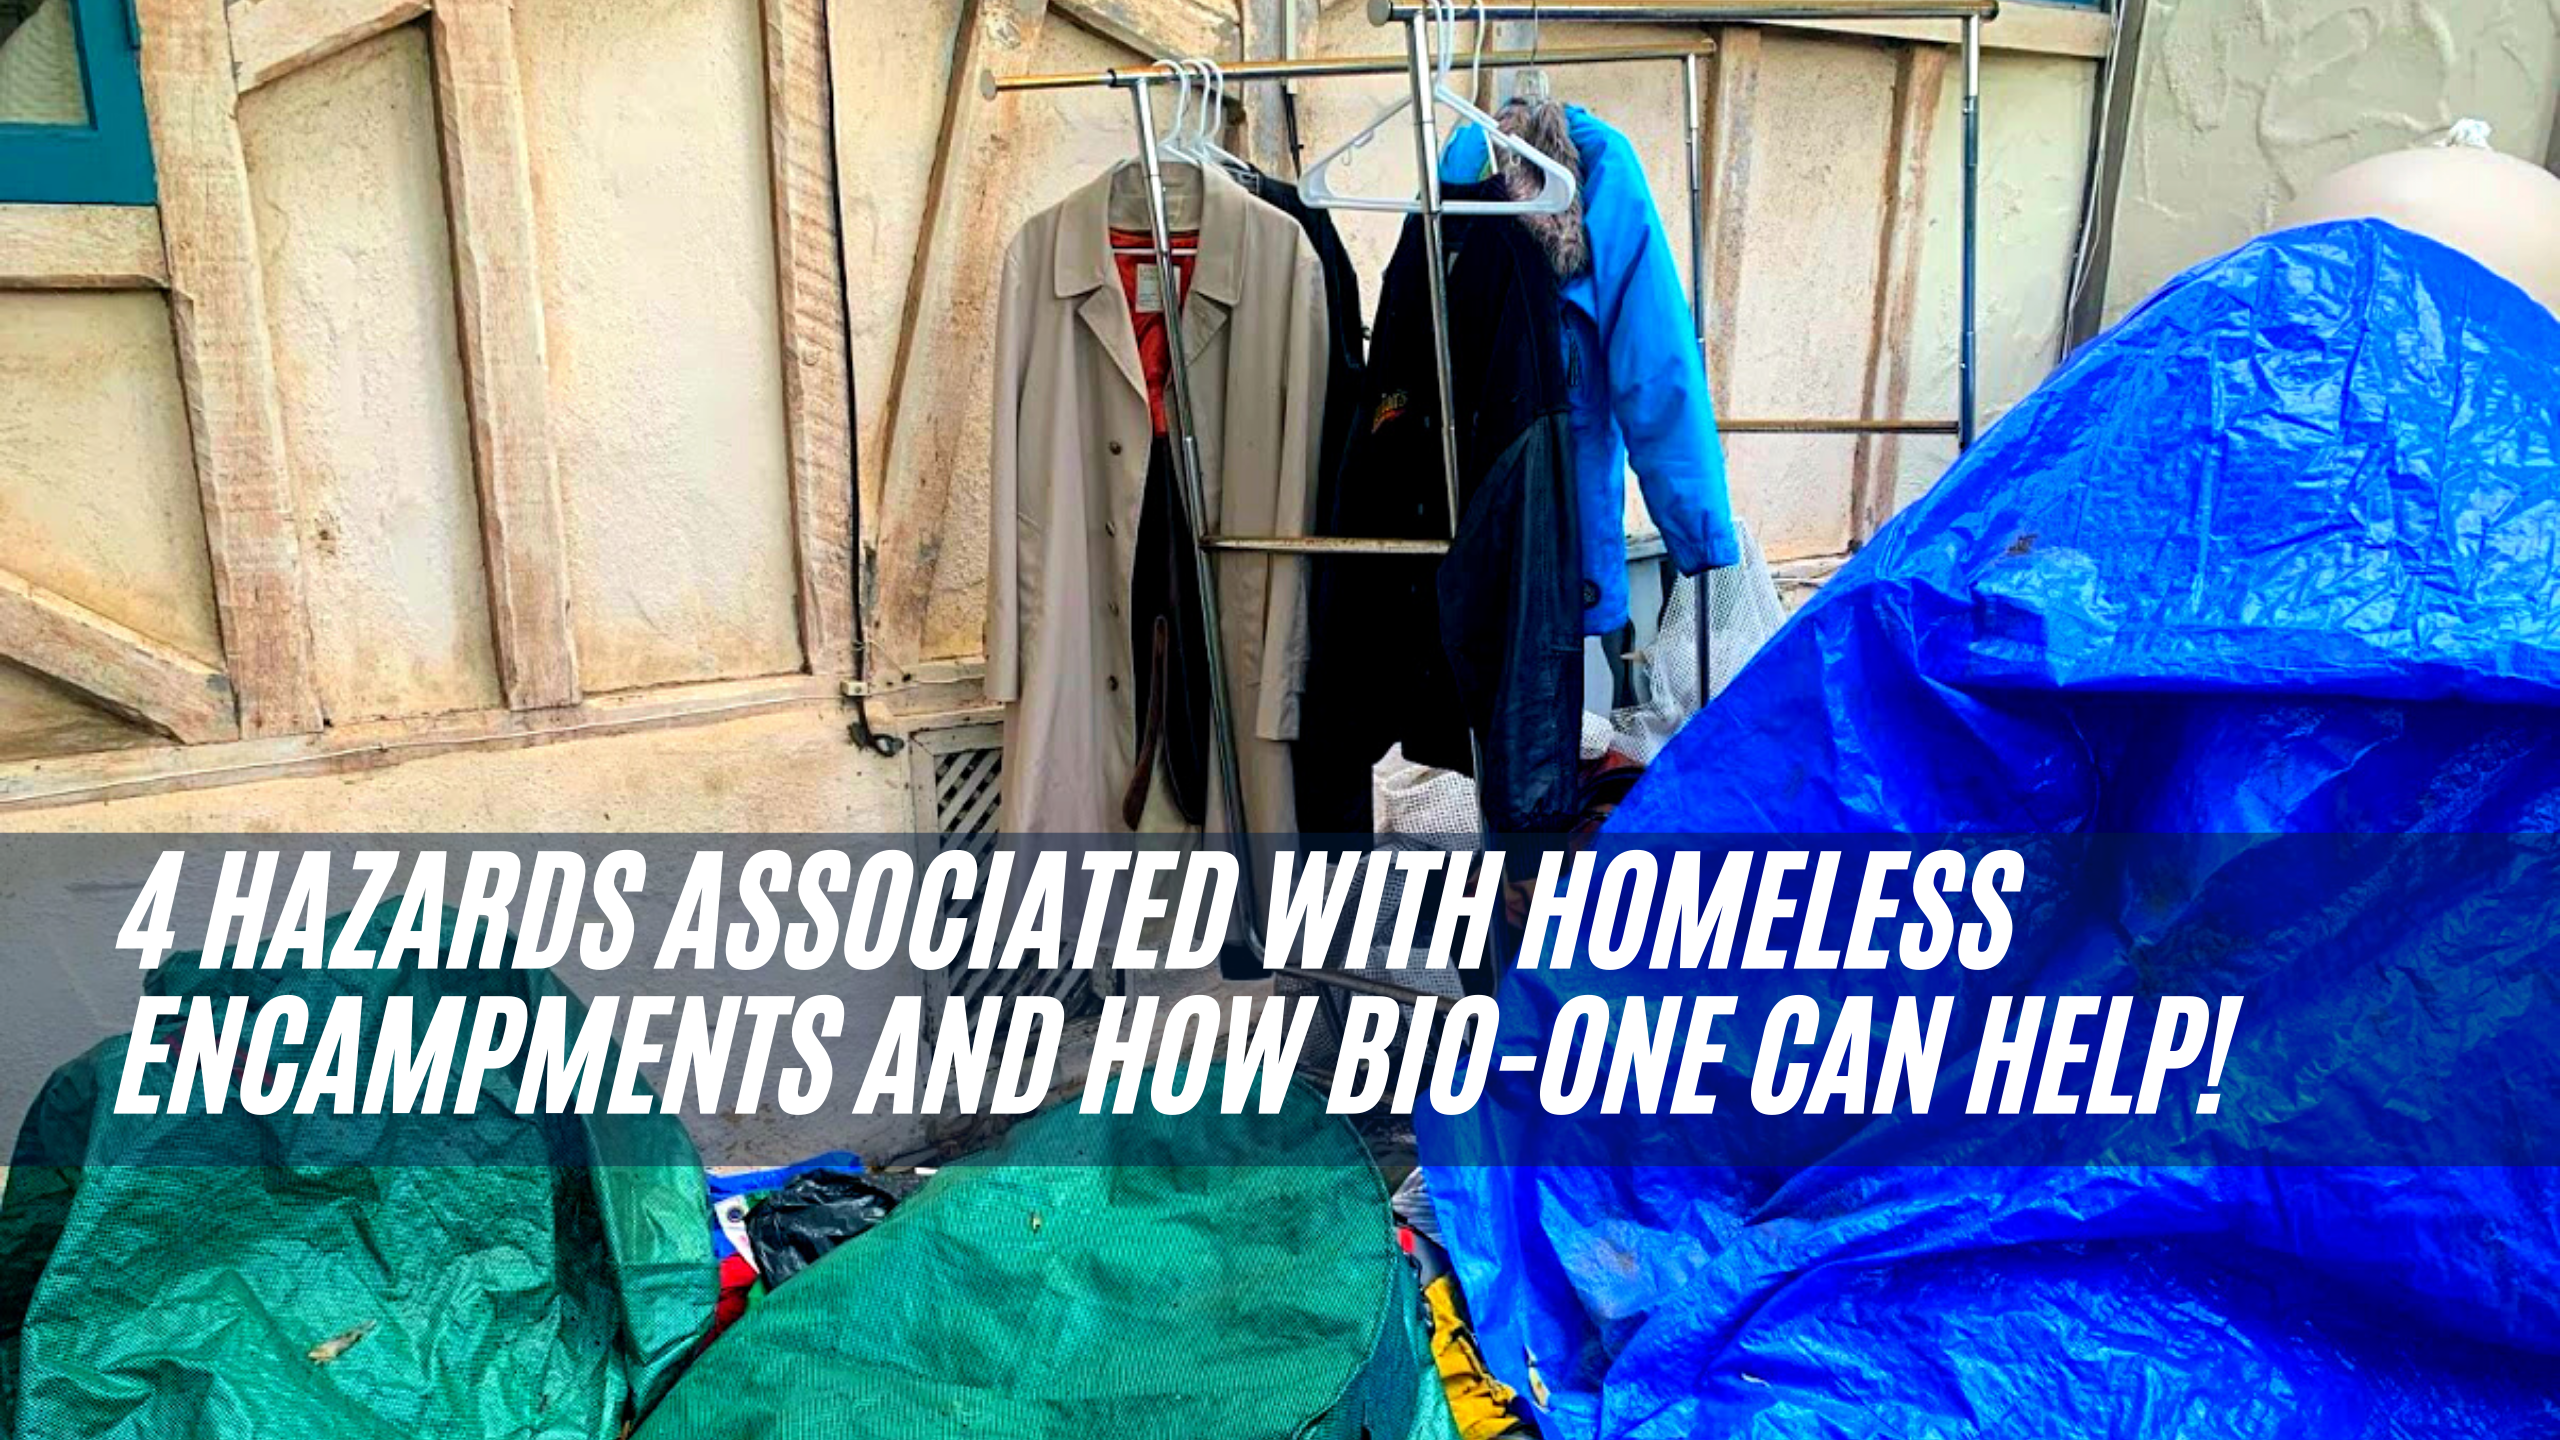 4  Hazards Associated with Homeless Encampments and How Bio-One Can Help!